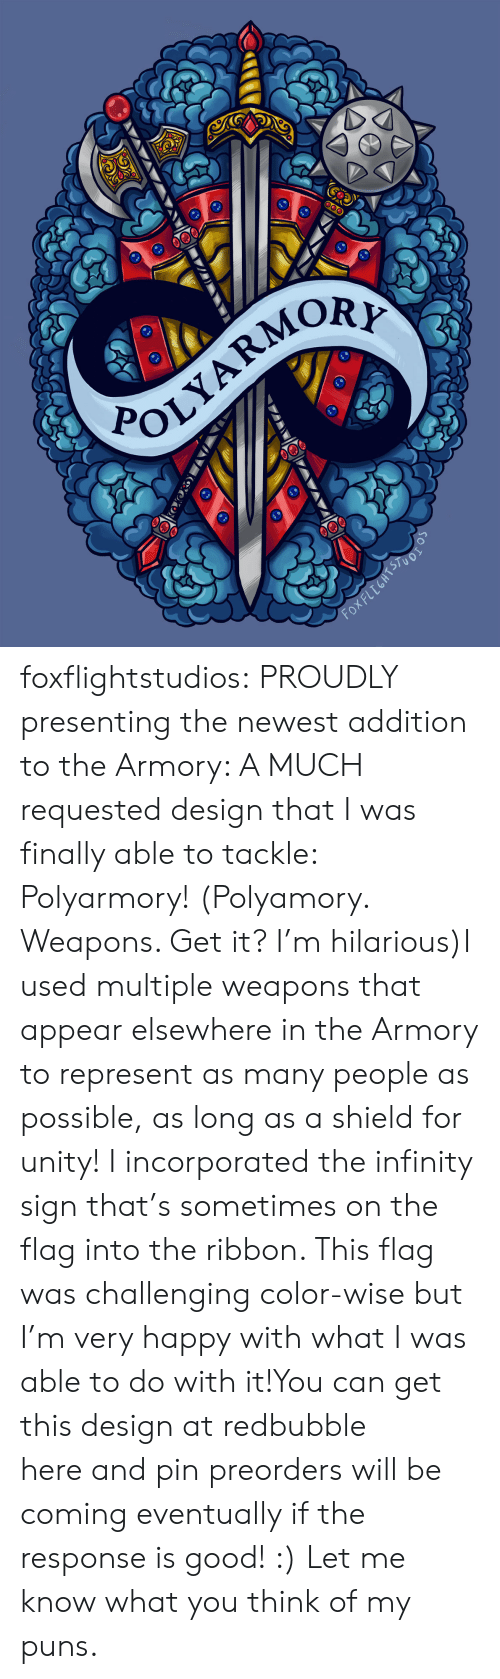 Redbubble: POLYARMOR  Fox FLEGHTSTUOI  (X foxflightstudios:  PROUDLY presenting the newest addition to the Armory: A MUCH requested design that I was finally able to tackle: Polyarmory! (Polyamory. Weapons. Get it? I'm hilarious)I used multiple weapons that appear elsewhere in the Armory to represent as many people as possible, as long as a shield for unity! I incorporated the infinity sign that's sometimes on the flag into the ribbon. This flag was challenging color-wise but I'm very happy with what I was able to do with it!You can get this design at redbubble here and pin preorders will be coming eventually if the response is good! :) Let me know what you think of my puns.